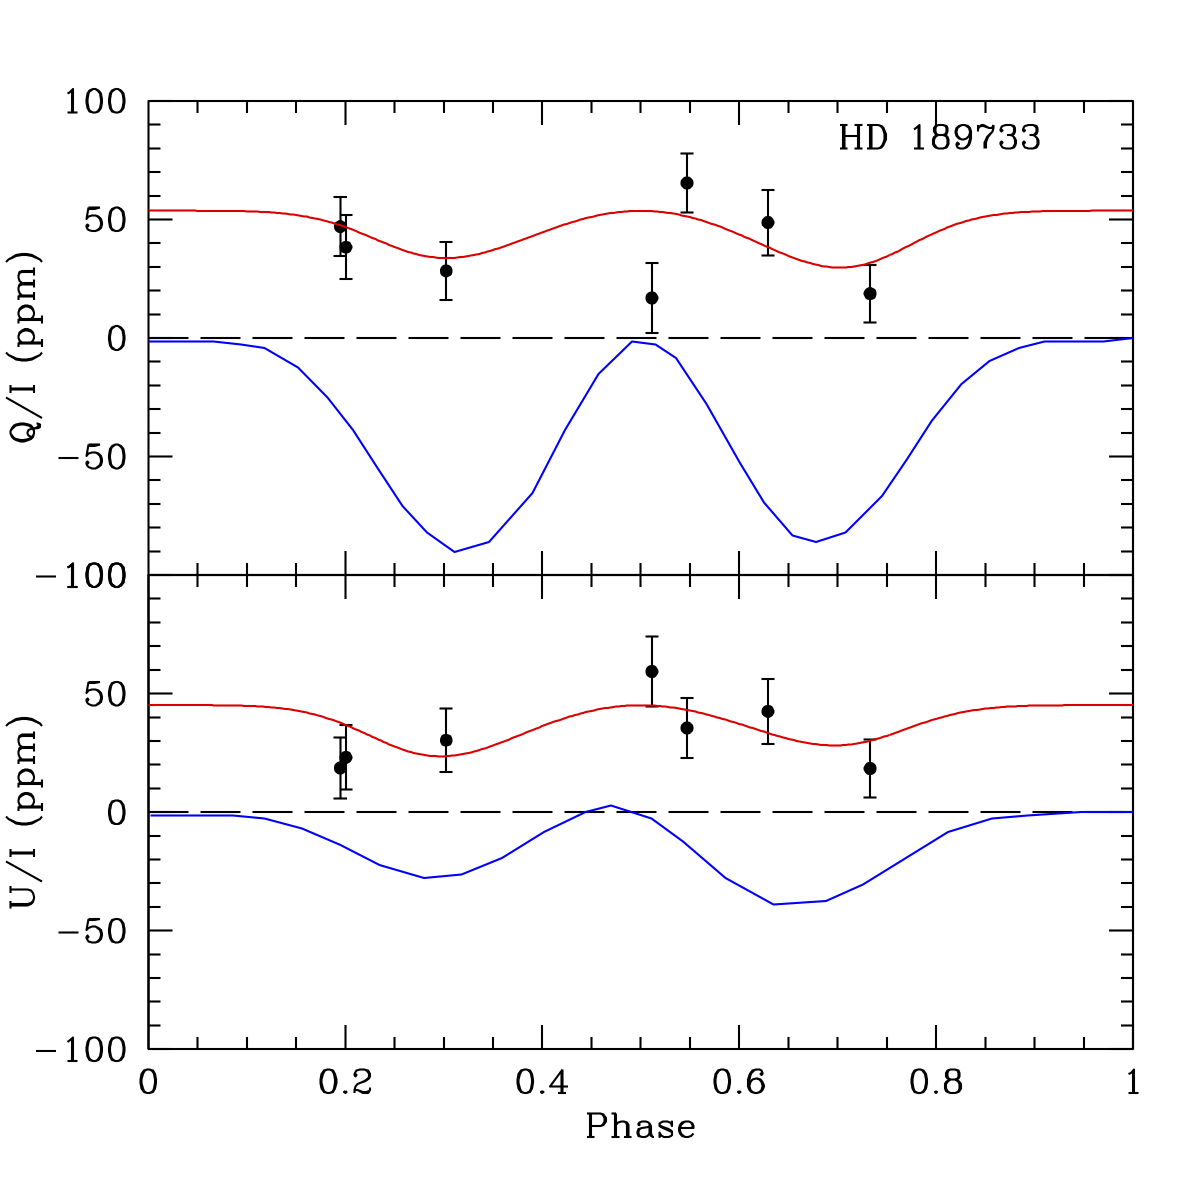 The (binned) variation we observed, with a least squares fit Rayleigh scattering curve in red, compared the the curve fit to Berdyugina et al.'s data in blue. The offset from zero would be predominantly due to the  interstellar polarisation from the ISM . Q/I and U/I are the normalised  Stokes parameters , so their variation in relation to each other tells us about the planet's orbital orientation.